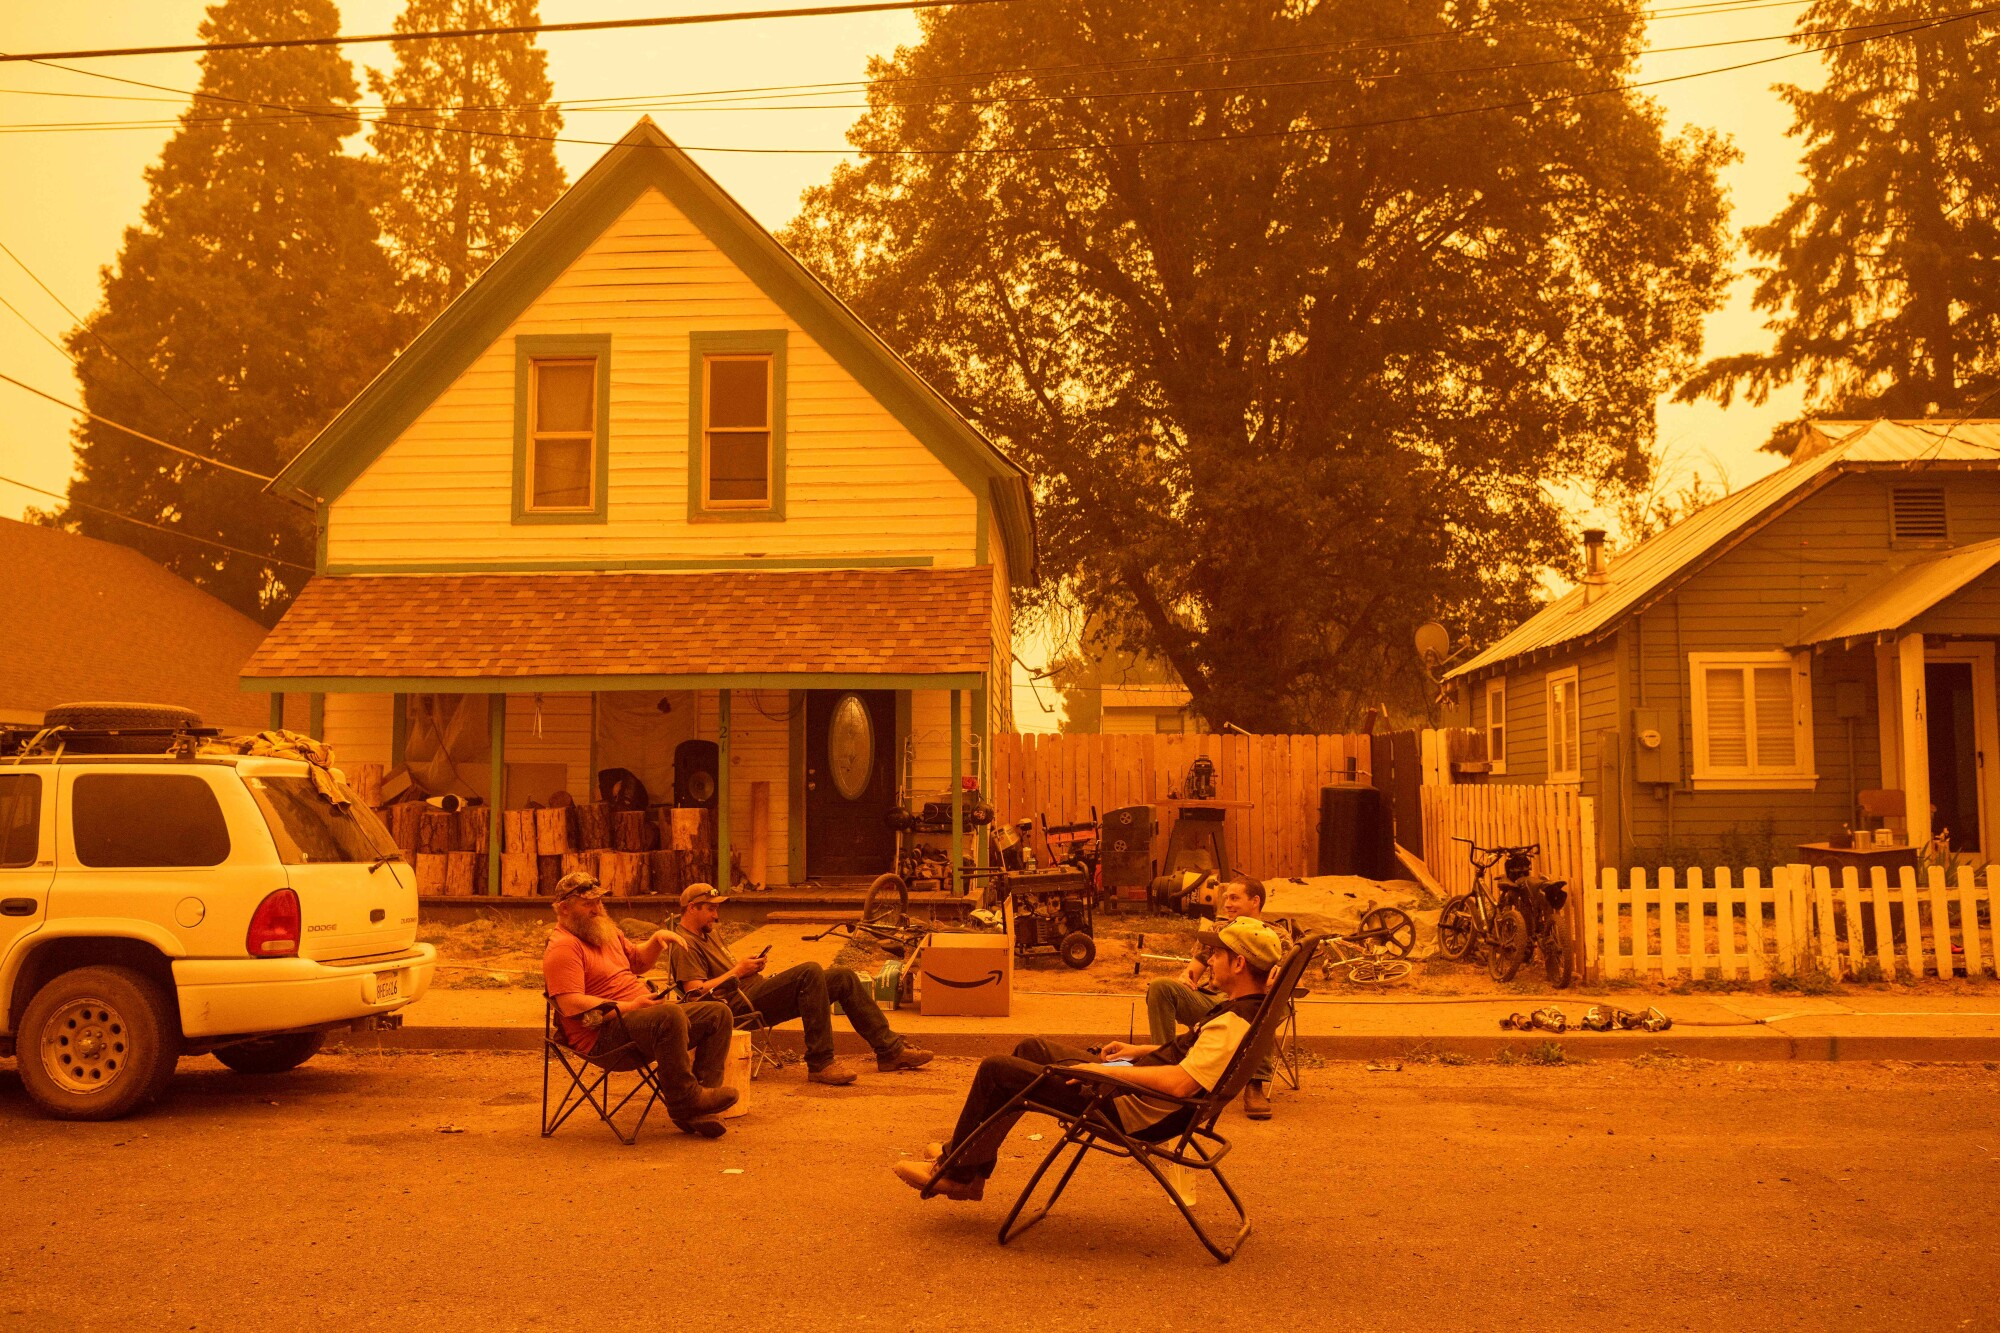 Residents sit in chairs in the street beneath an orange sky.